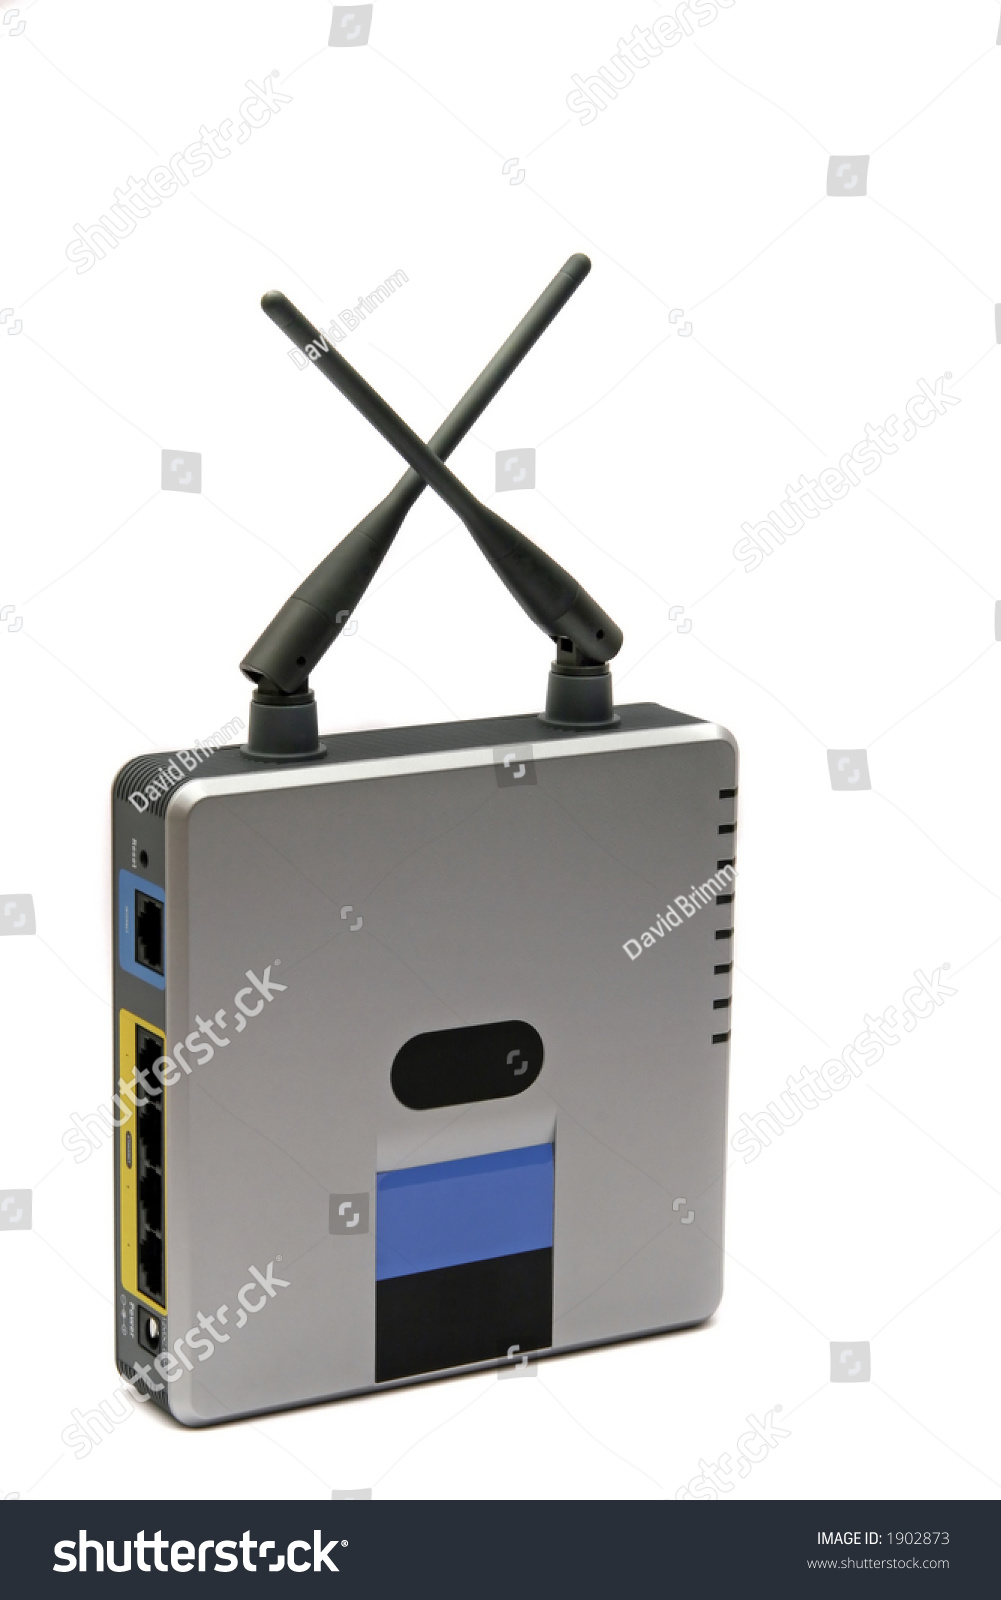 Wireless Router Integrates Wireless Access Point Stock Photo (Edit ...